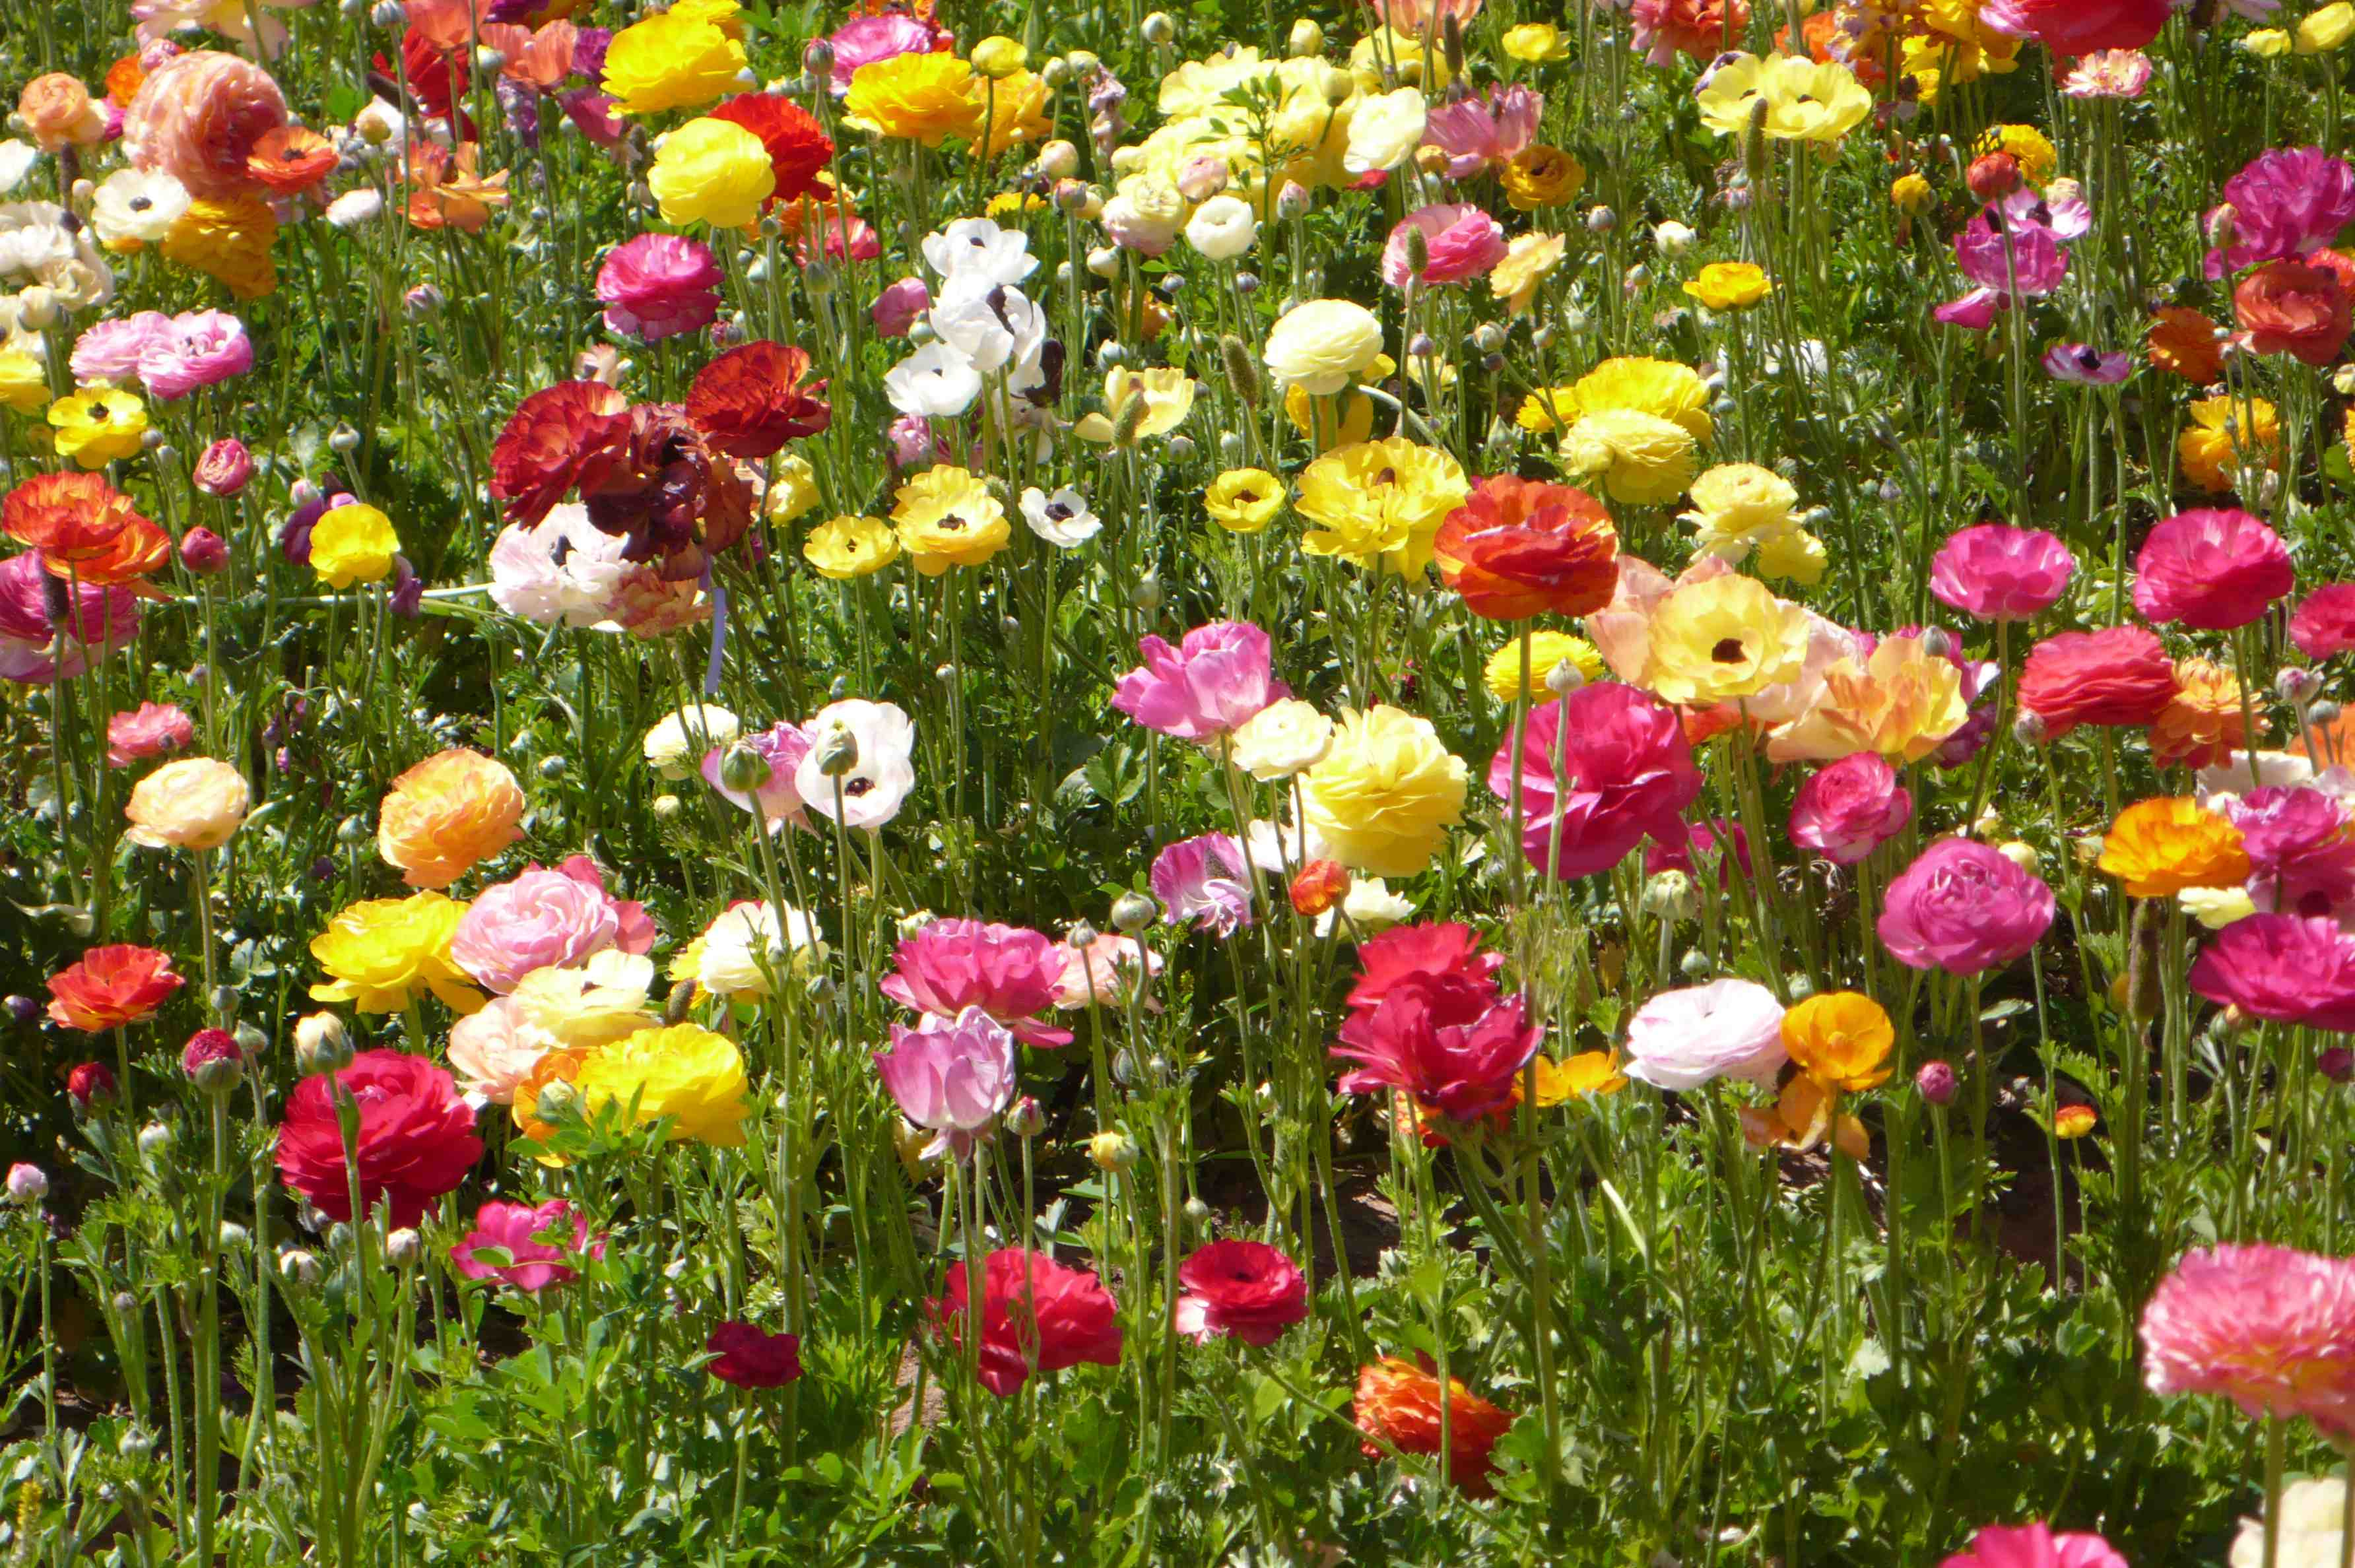 The Divine Dish Giant Ranunculus in Bloom at Carlsbad Flower Fields